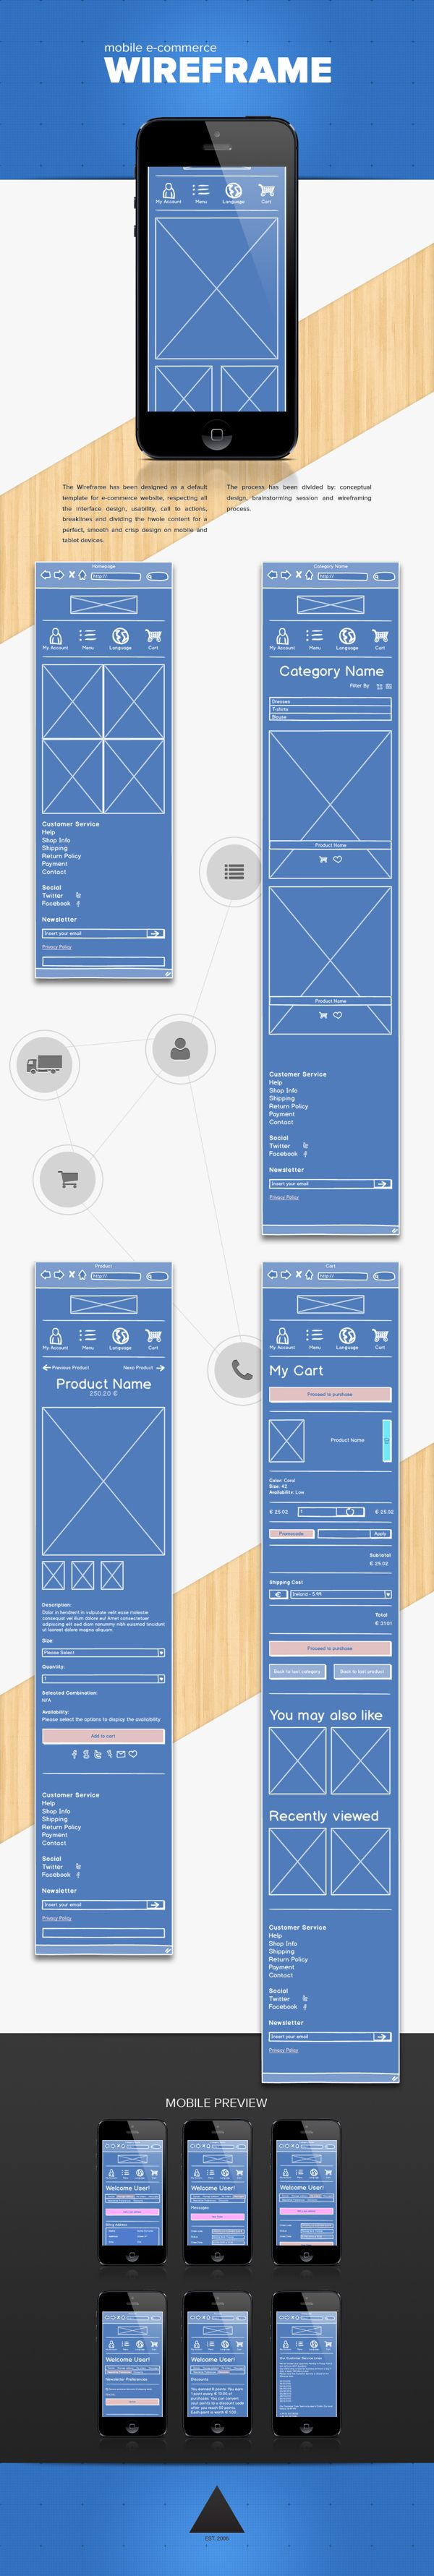 E-Commerce wireframe Concept via Behance, using everyone's fugly favorite, Balsamiq!